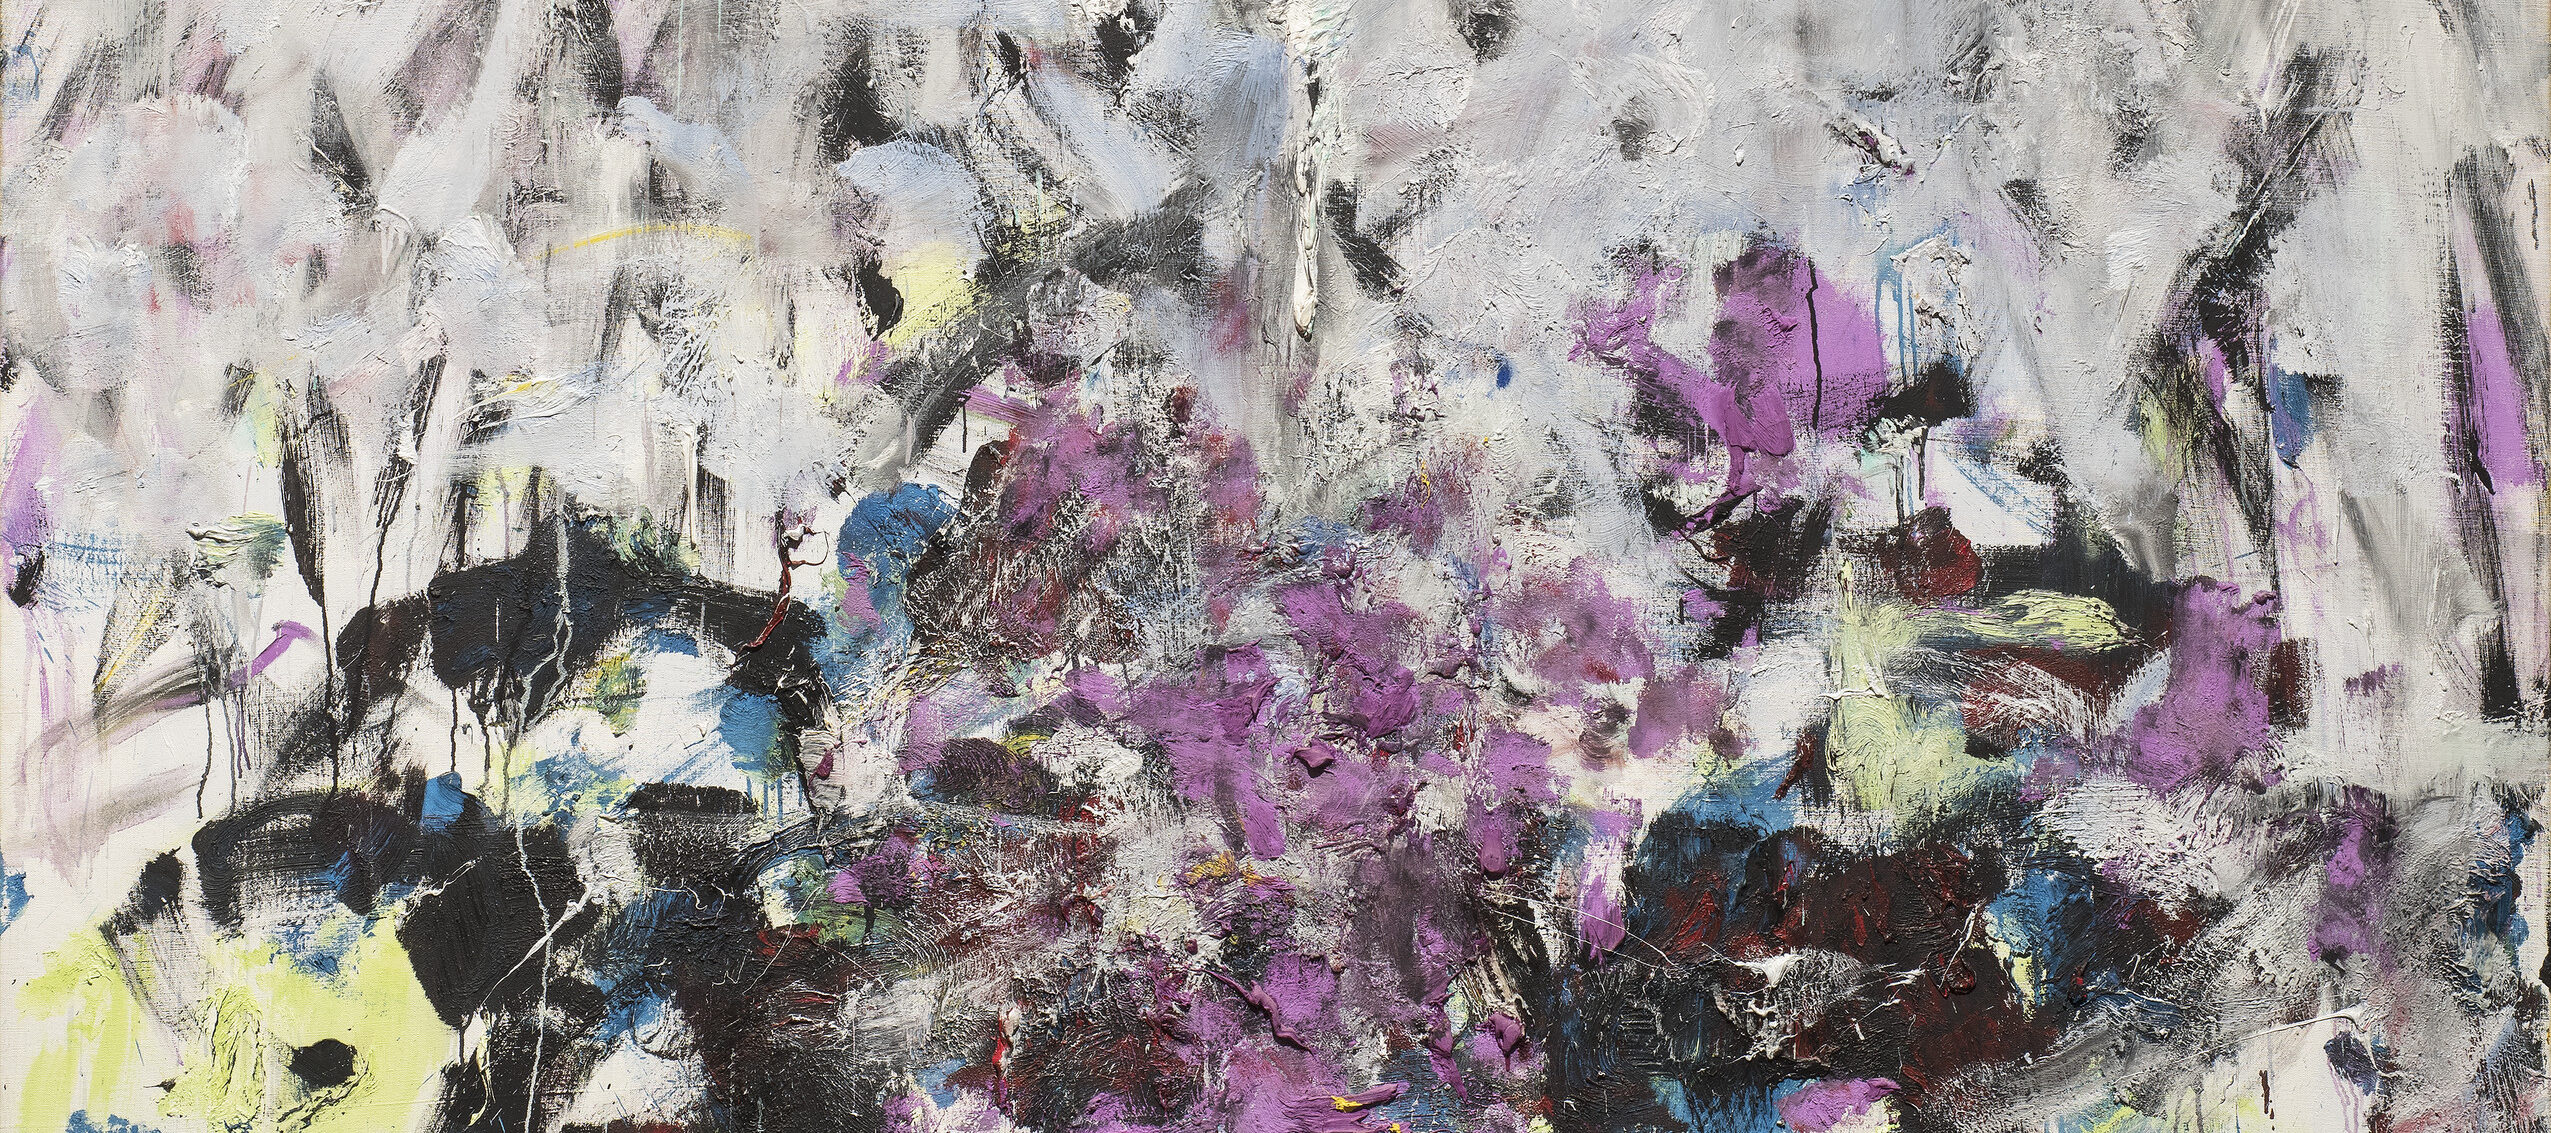 A vertical, abstraction features broadly painted strokes of pale gray, lavender, and cobalt in the upper two-thirds of the canvas. The colors continue in the lower third, along with touches of green, black, and other hues, but the expressive brushwork becomes denser and chaotic.